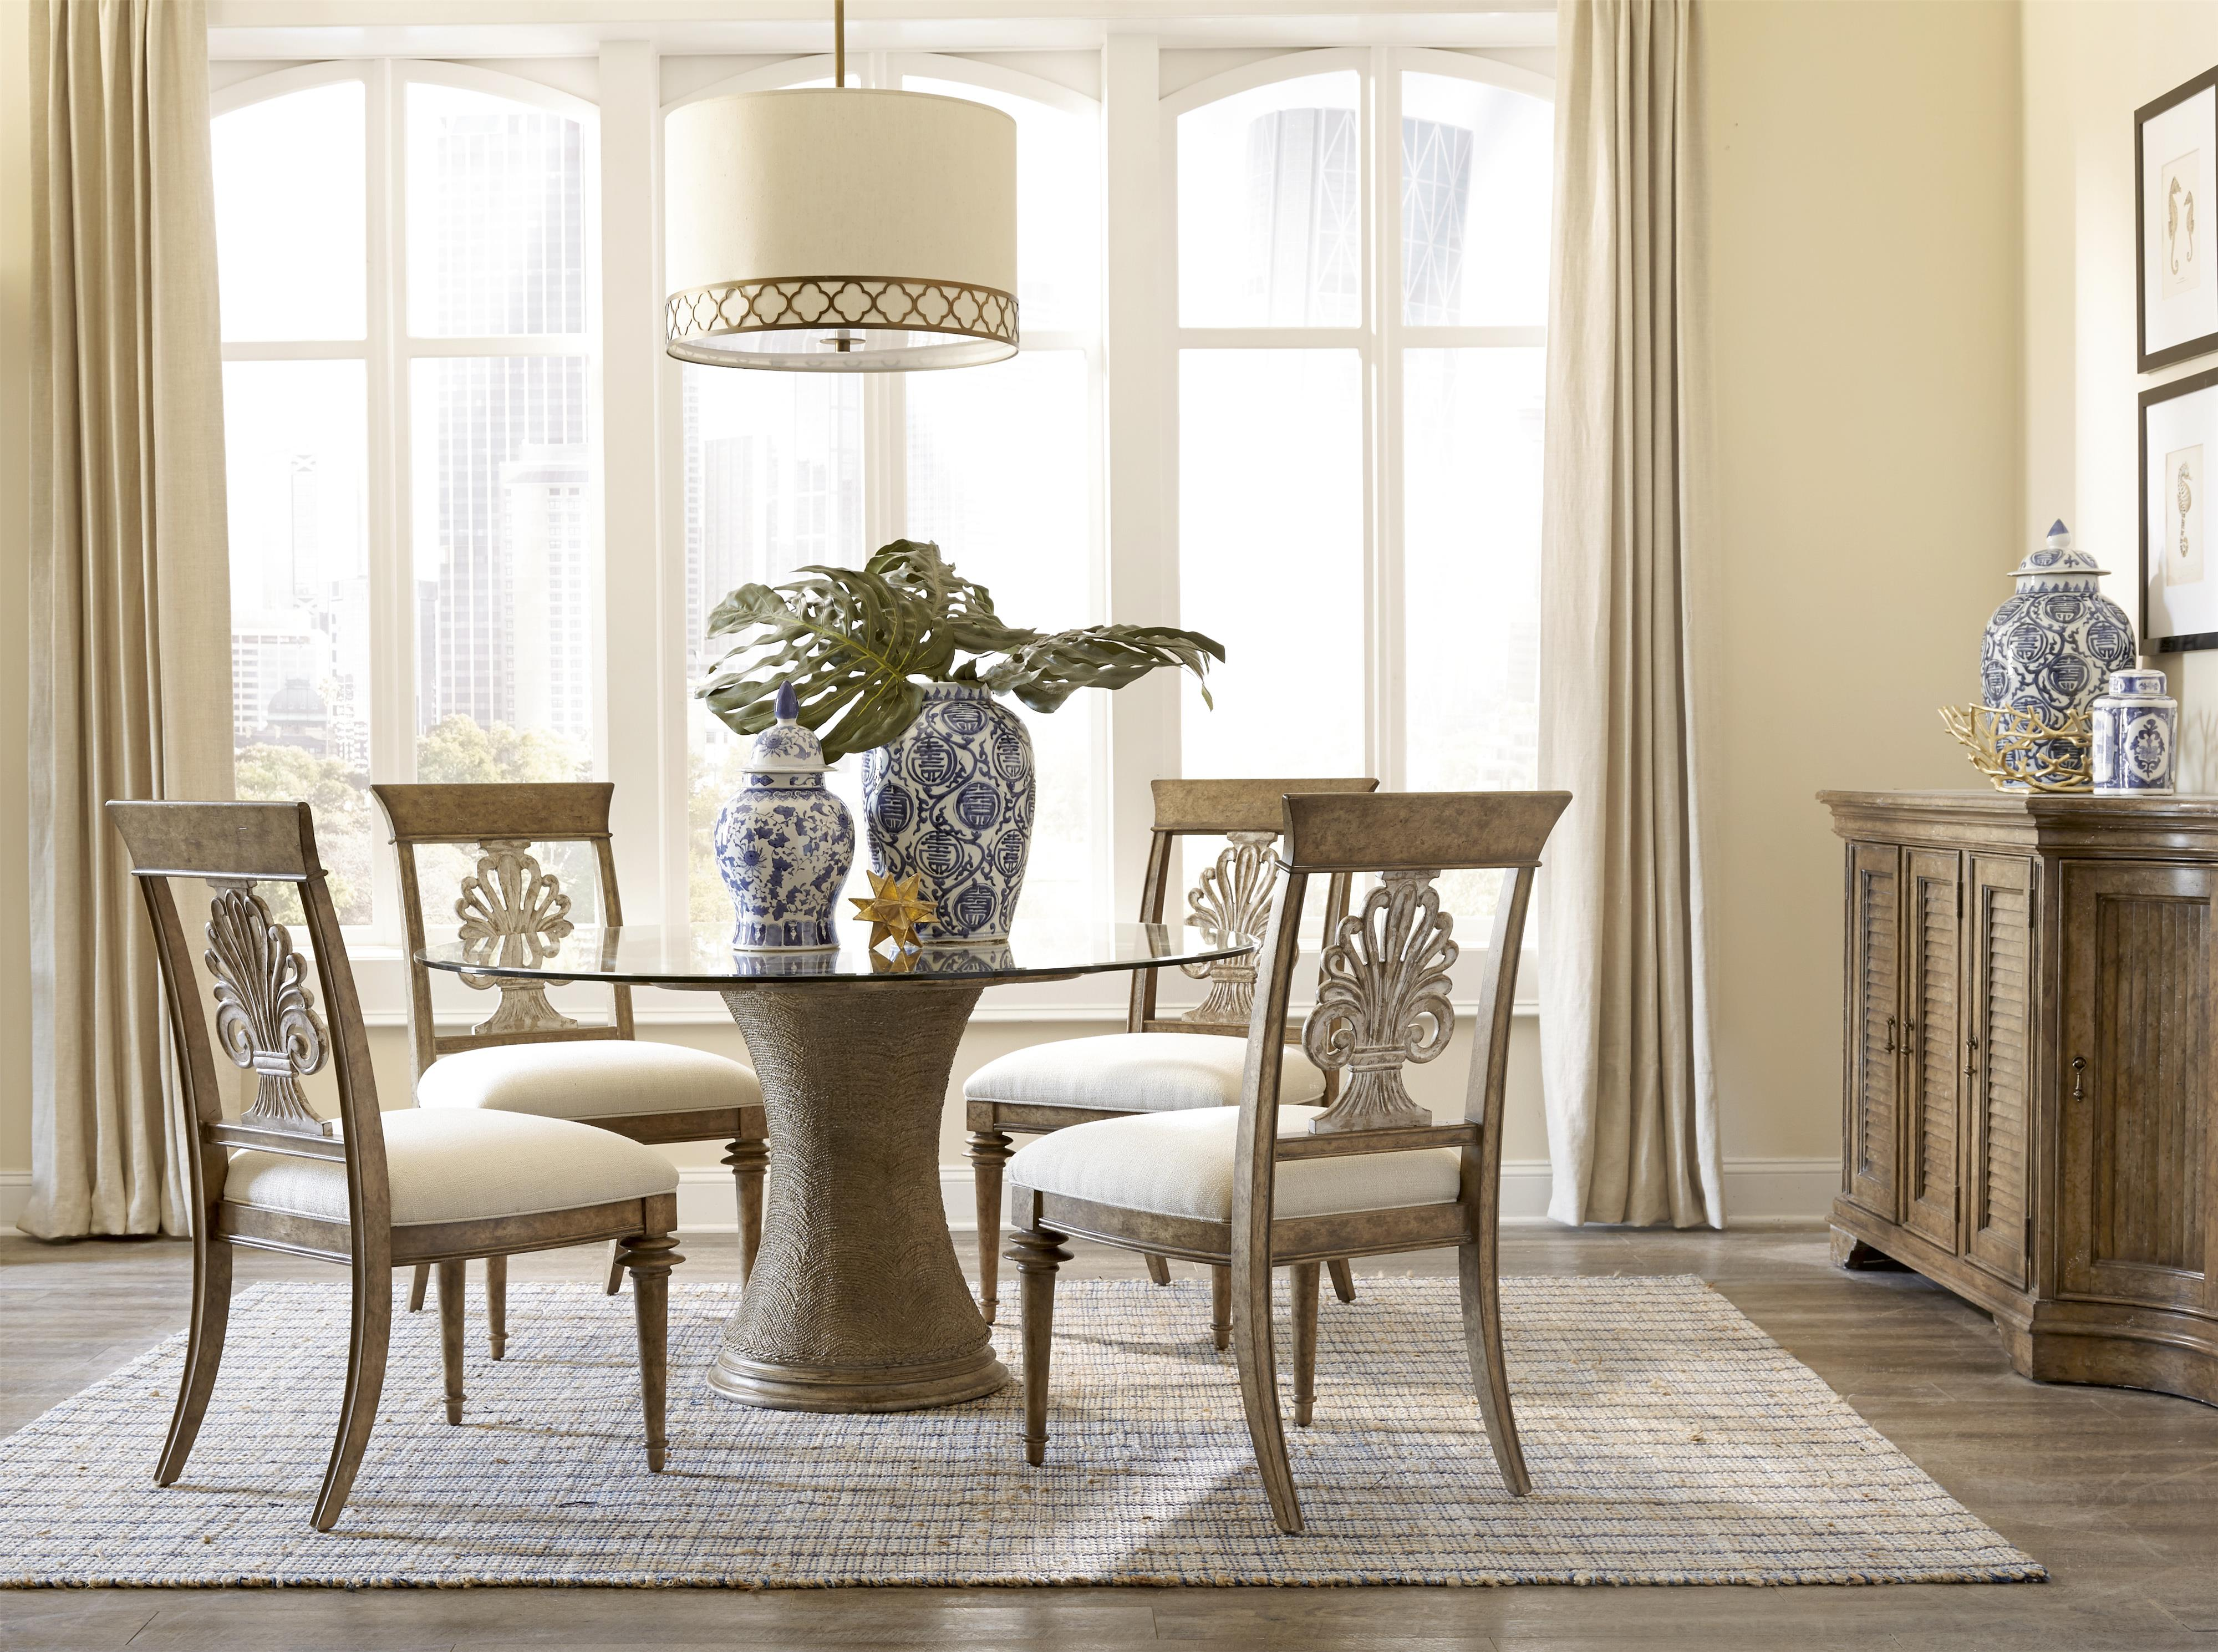 54 Inch Round Dining Table with Glass Top and Pedestal Base by